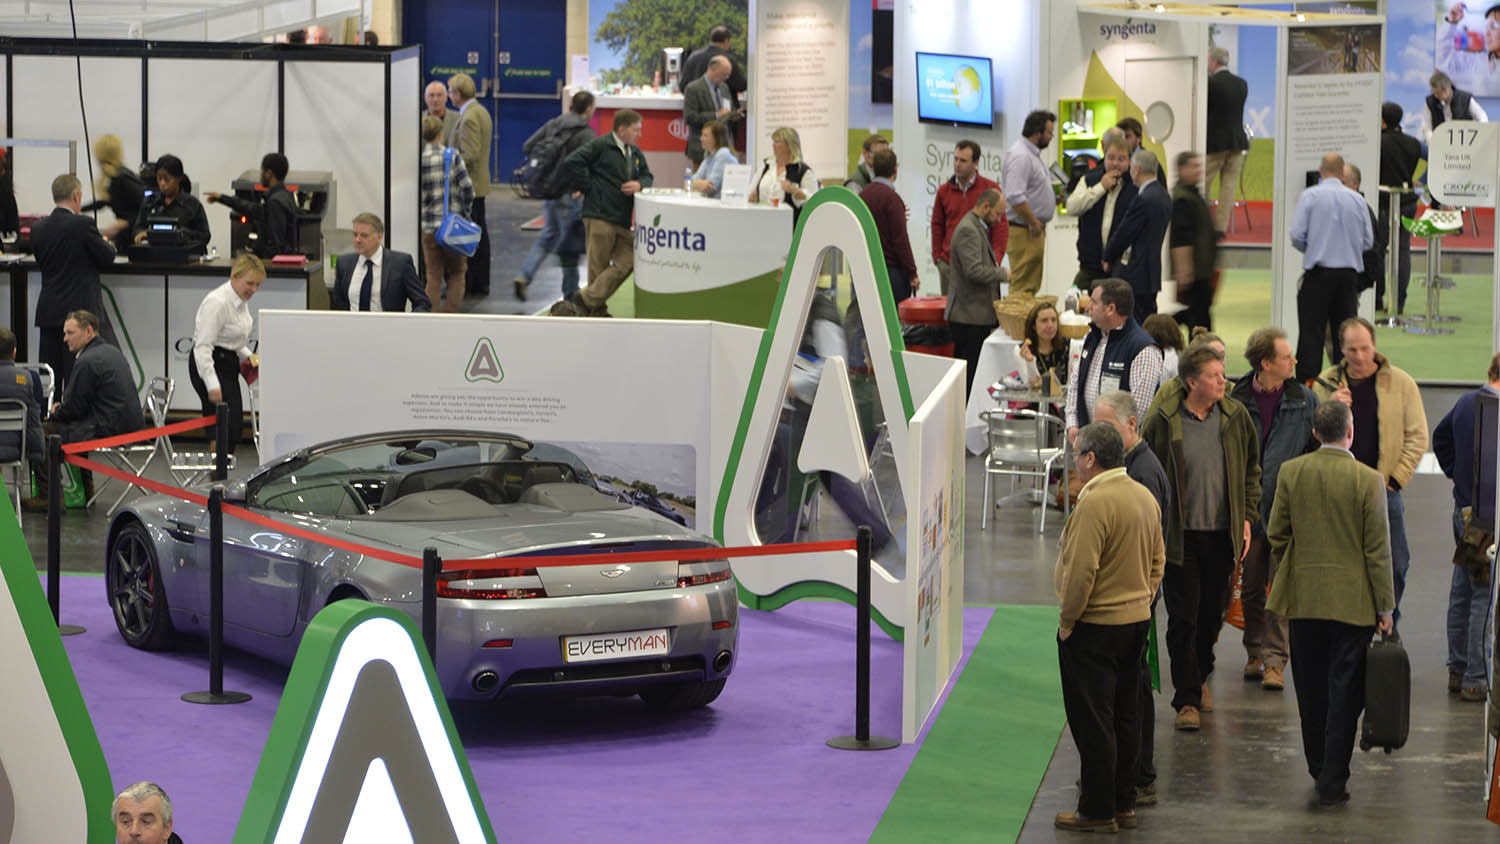 CropTec supercar prize winners announced